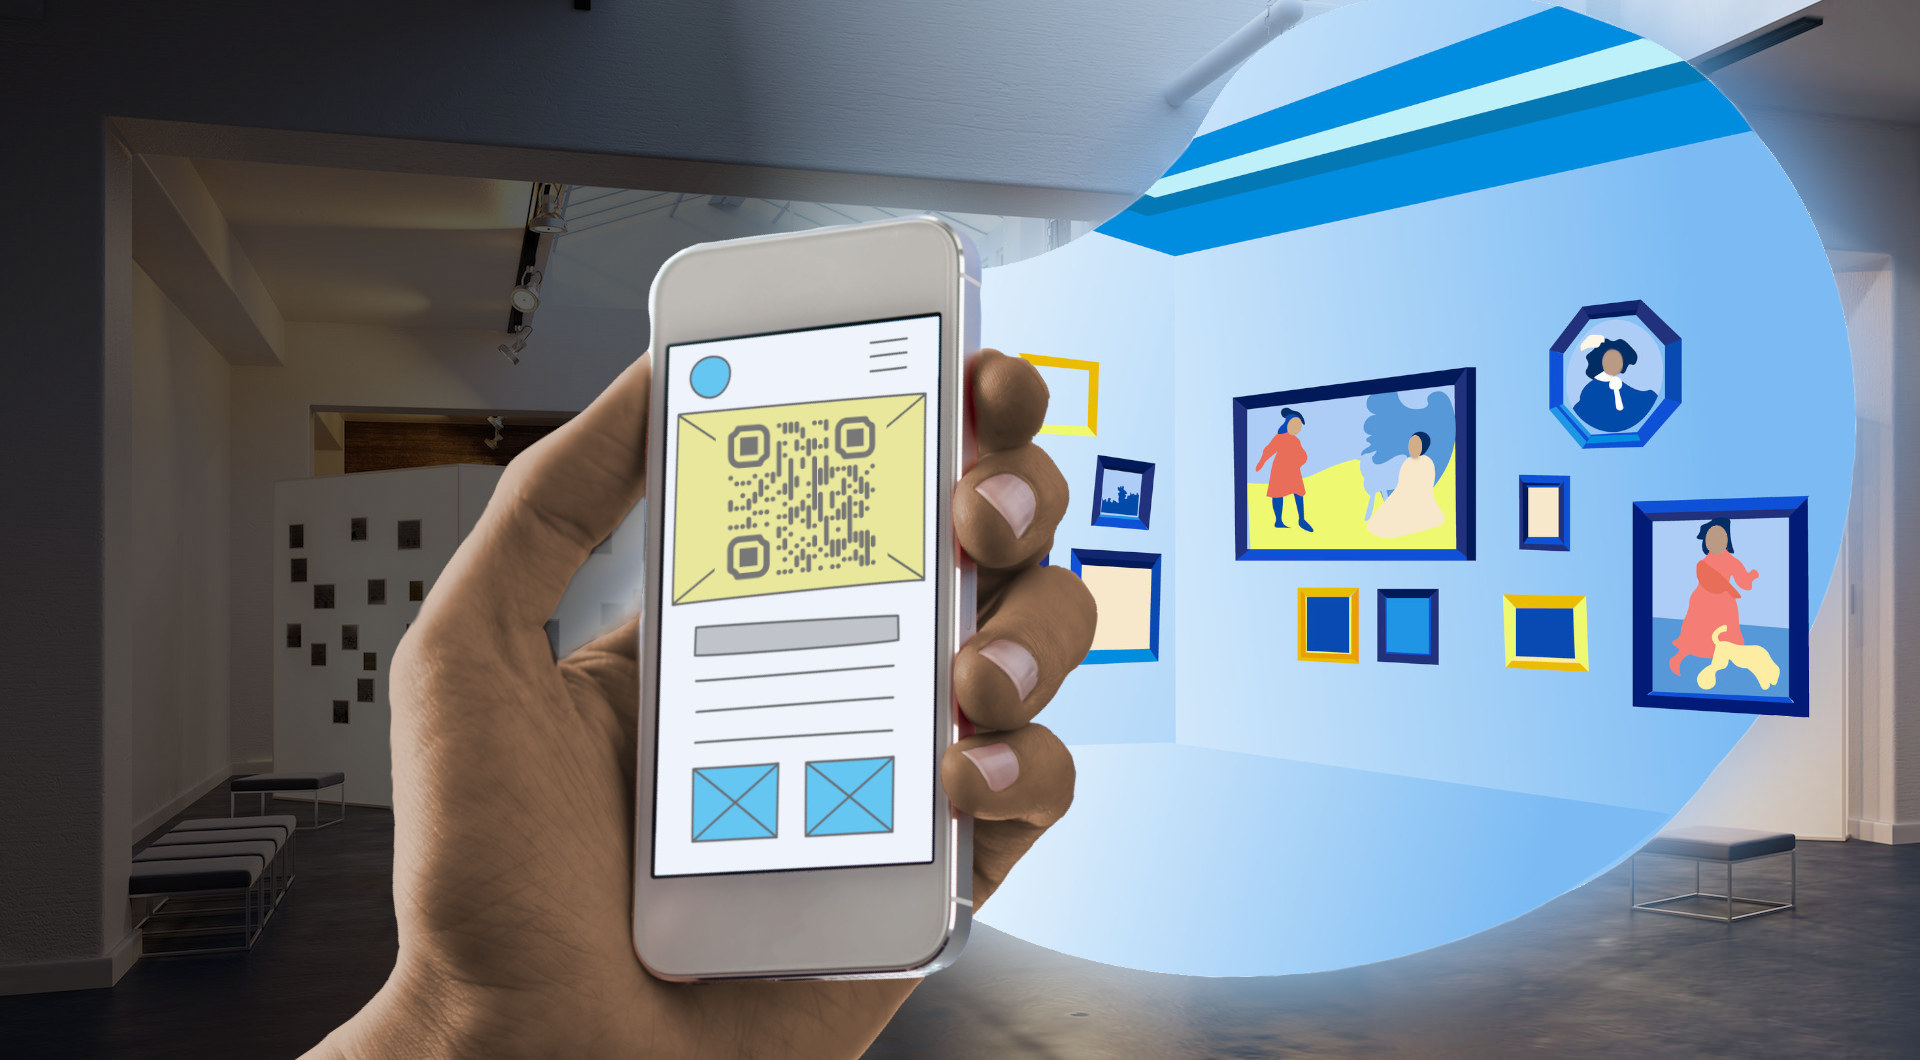 illustration of an imaginary room full of new paintings, emerging from behind a smartphone screen being held up in the real-world museum gallery